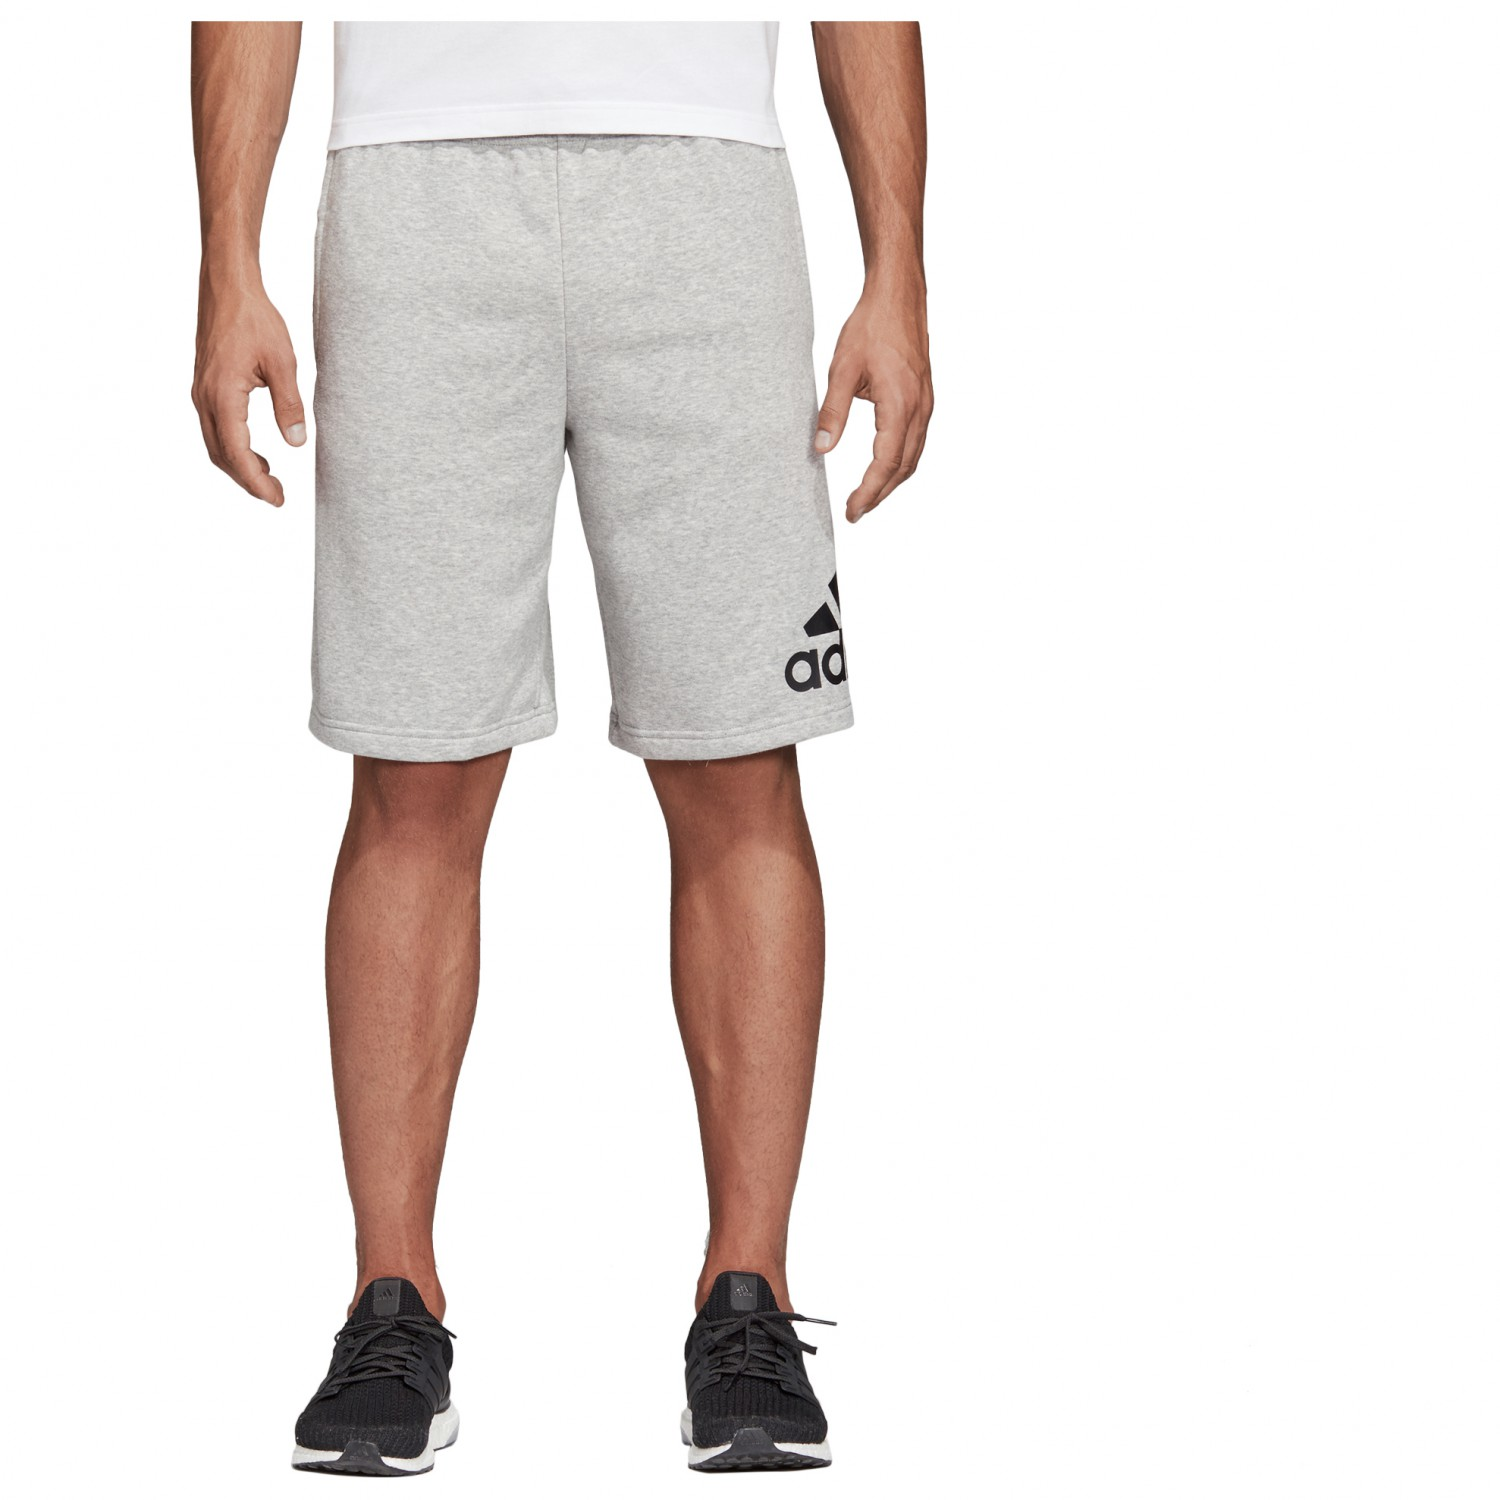 df1ae17fd7 ... adidas - MustHave Badge of Sport Short FT - Short de running ...